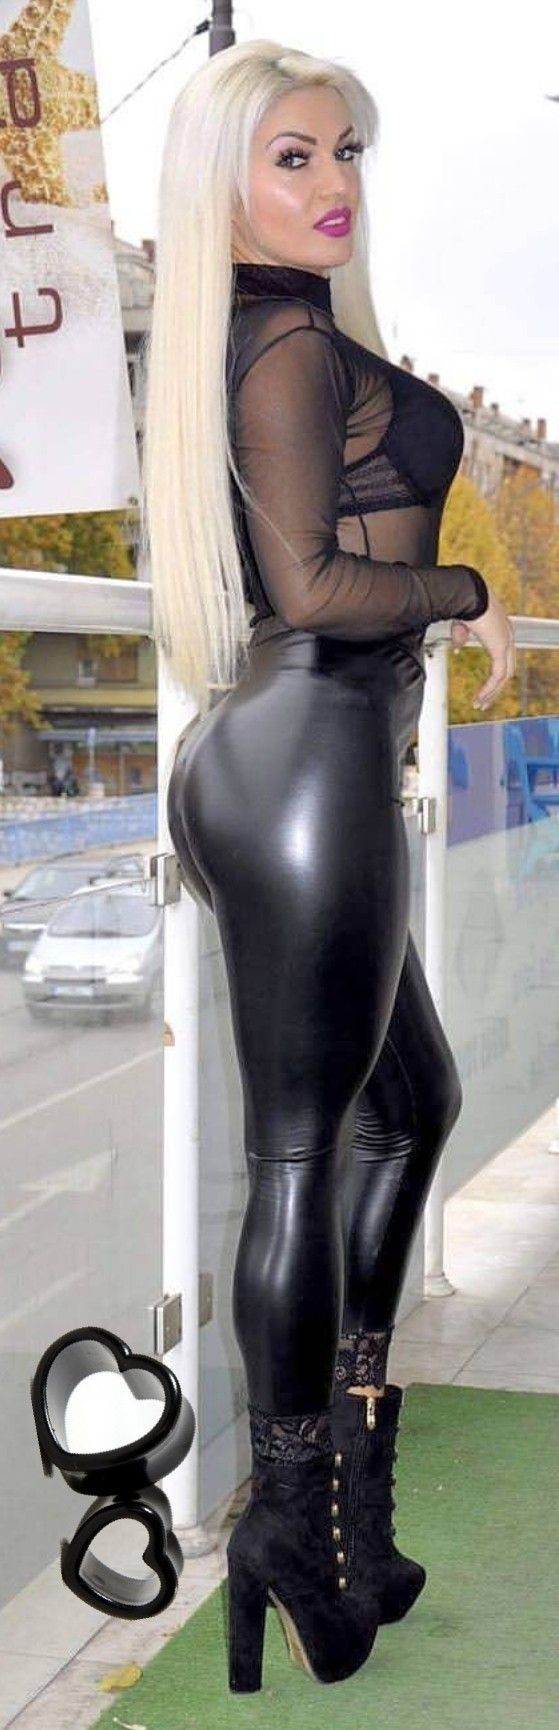 Holly Halston Latex with regard to 333 best alles images on pinterest | woman, beautiful women and